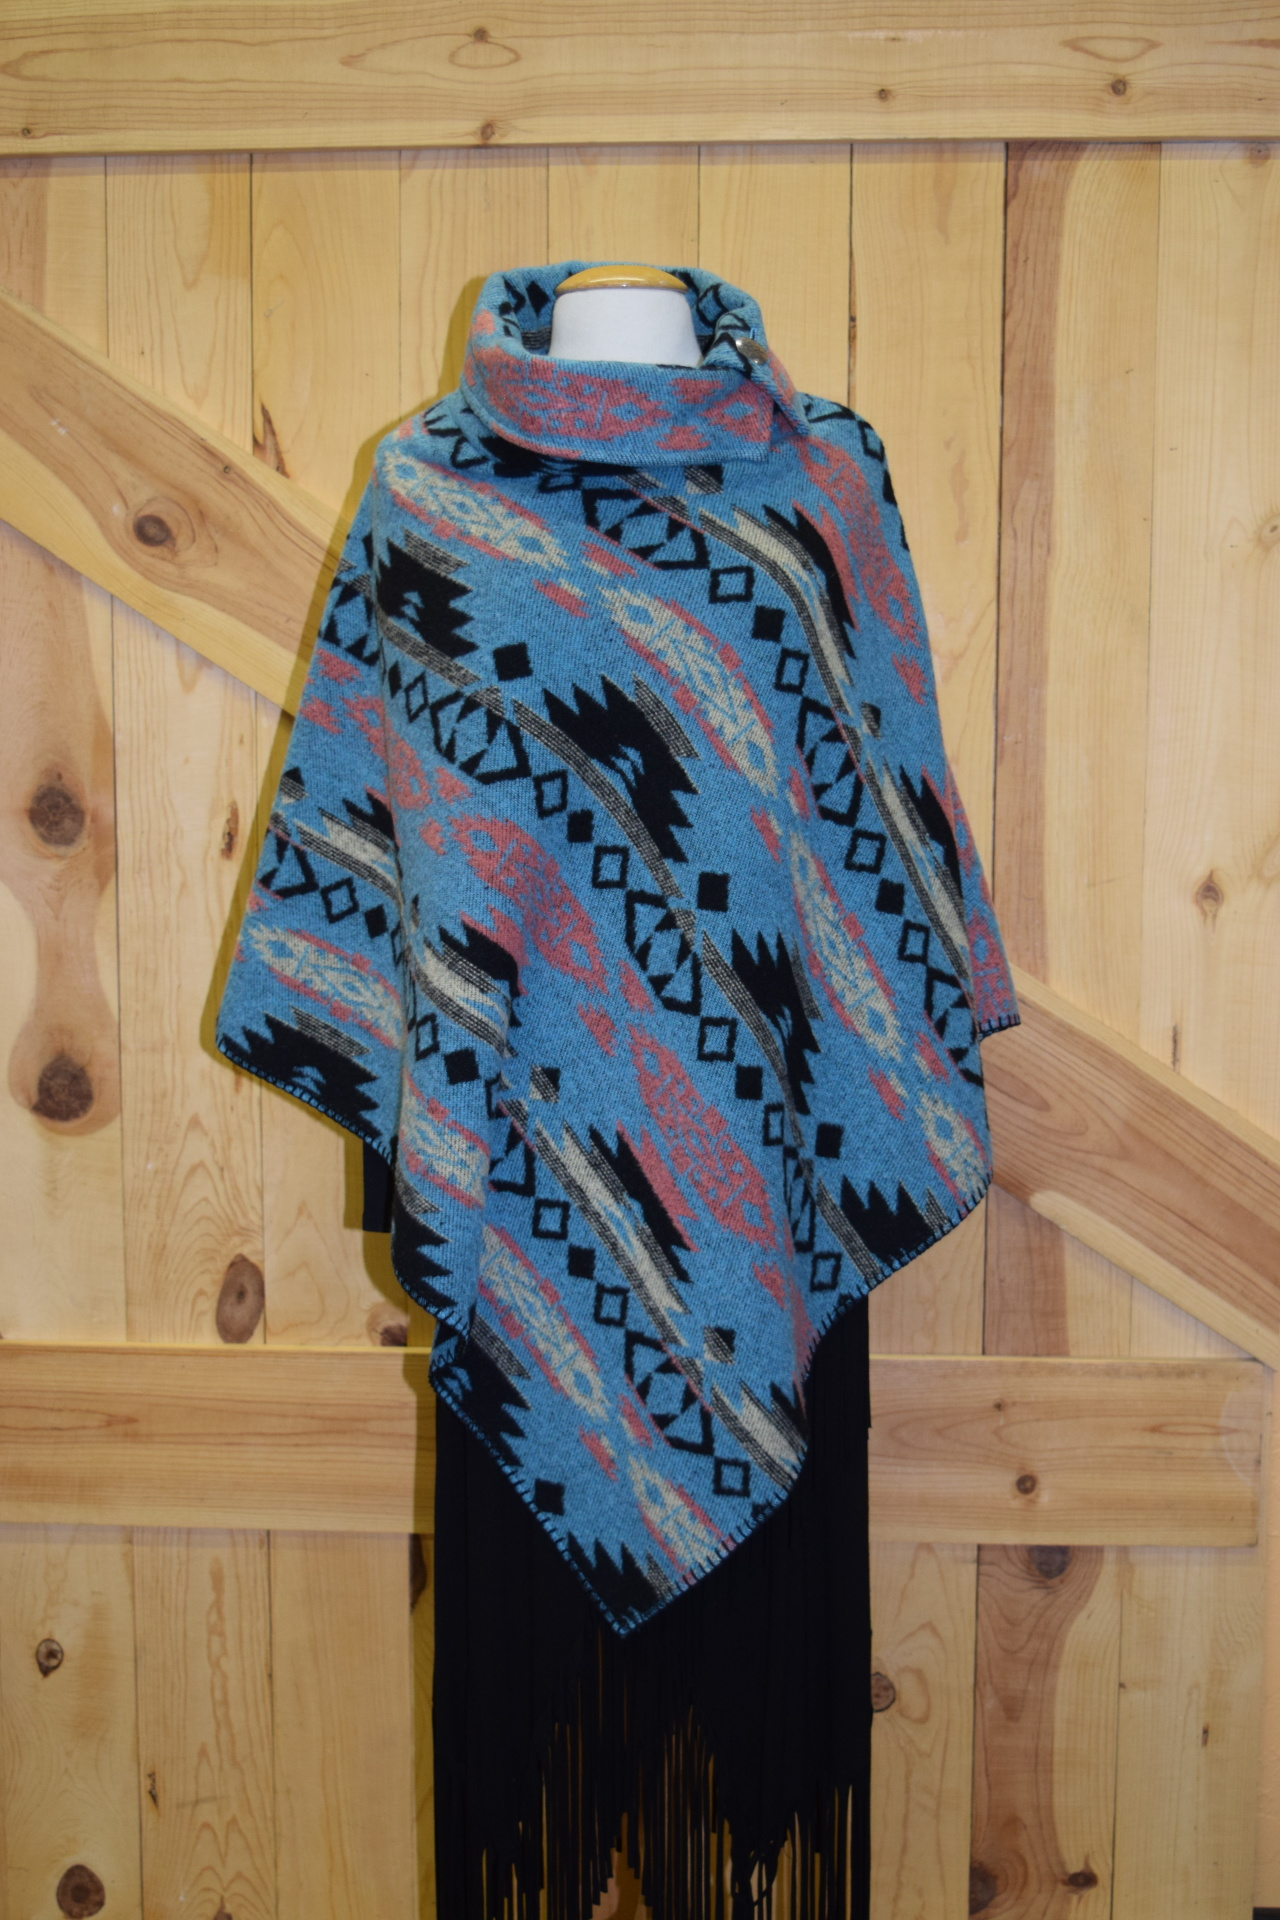 "#208ASST. COL. 05 - BUTTON COLLAR 30"" PONCHO - O/S - WAS $129.95 -- SALE $99.95!"